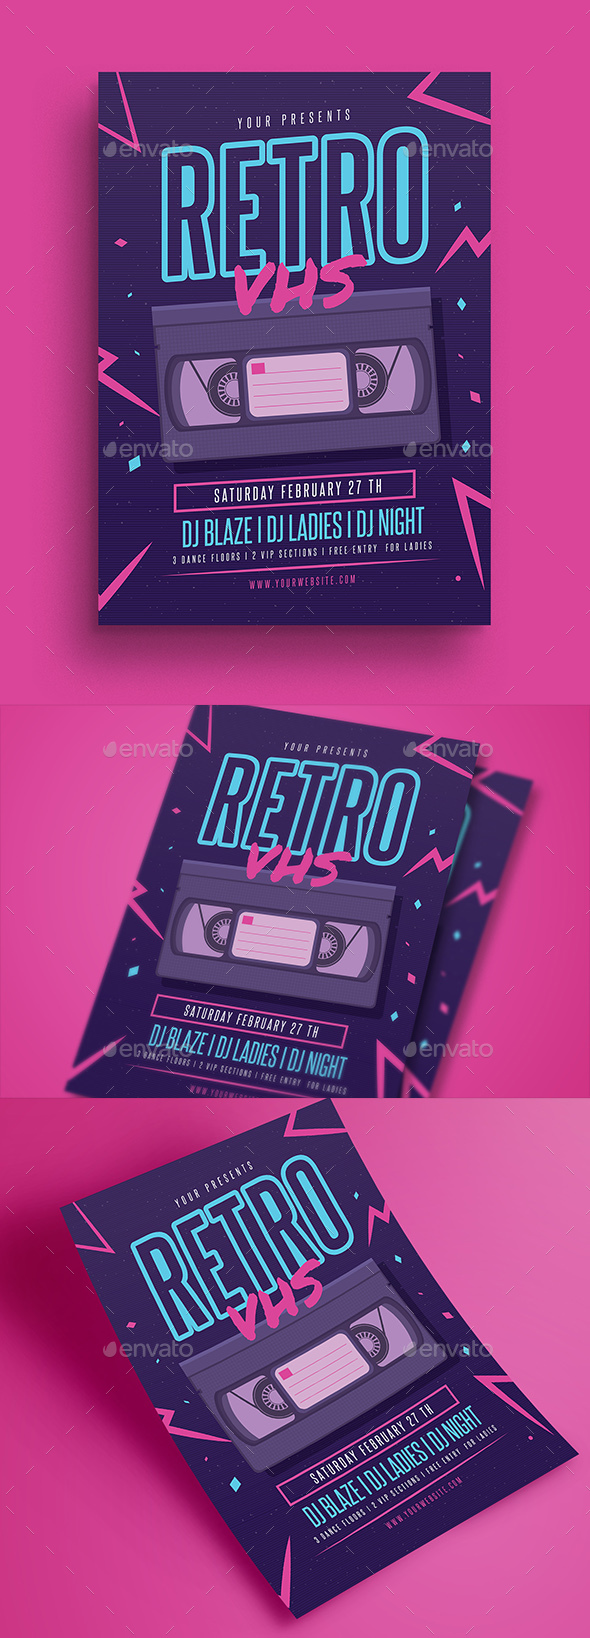 Retro VHS Music Flyer - Events Flyers